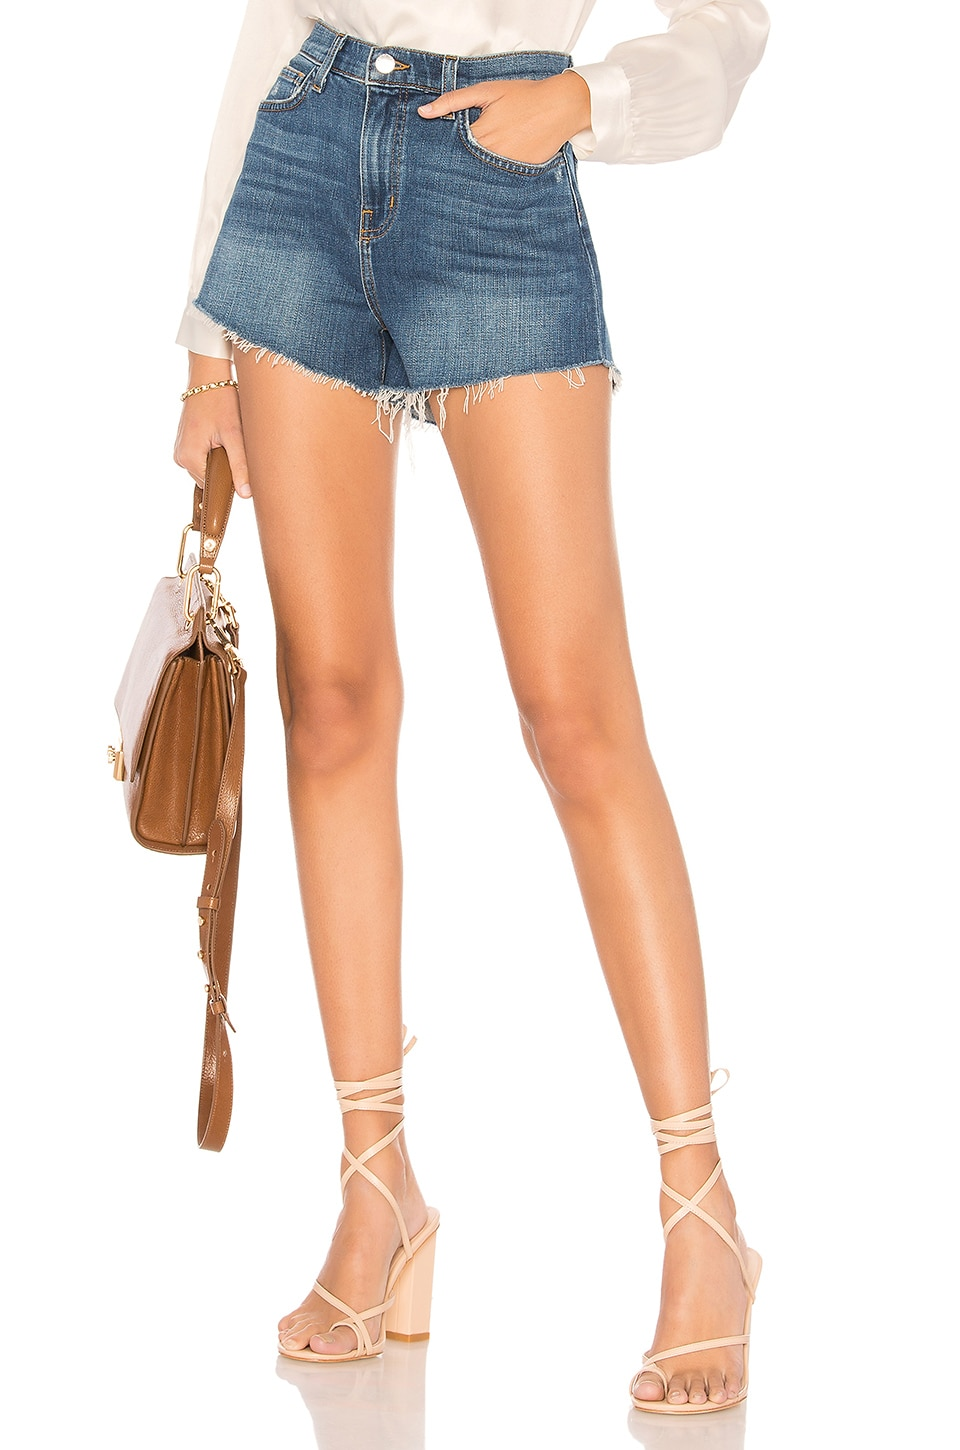 L'AGENCE Ryland High Waist Short in Authentique